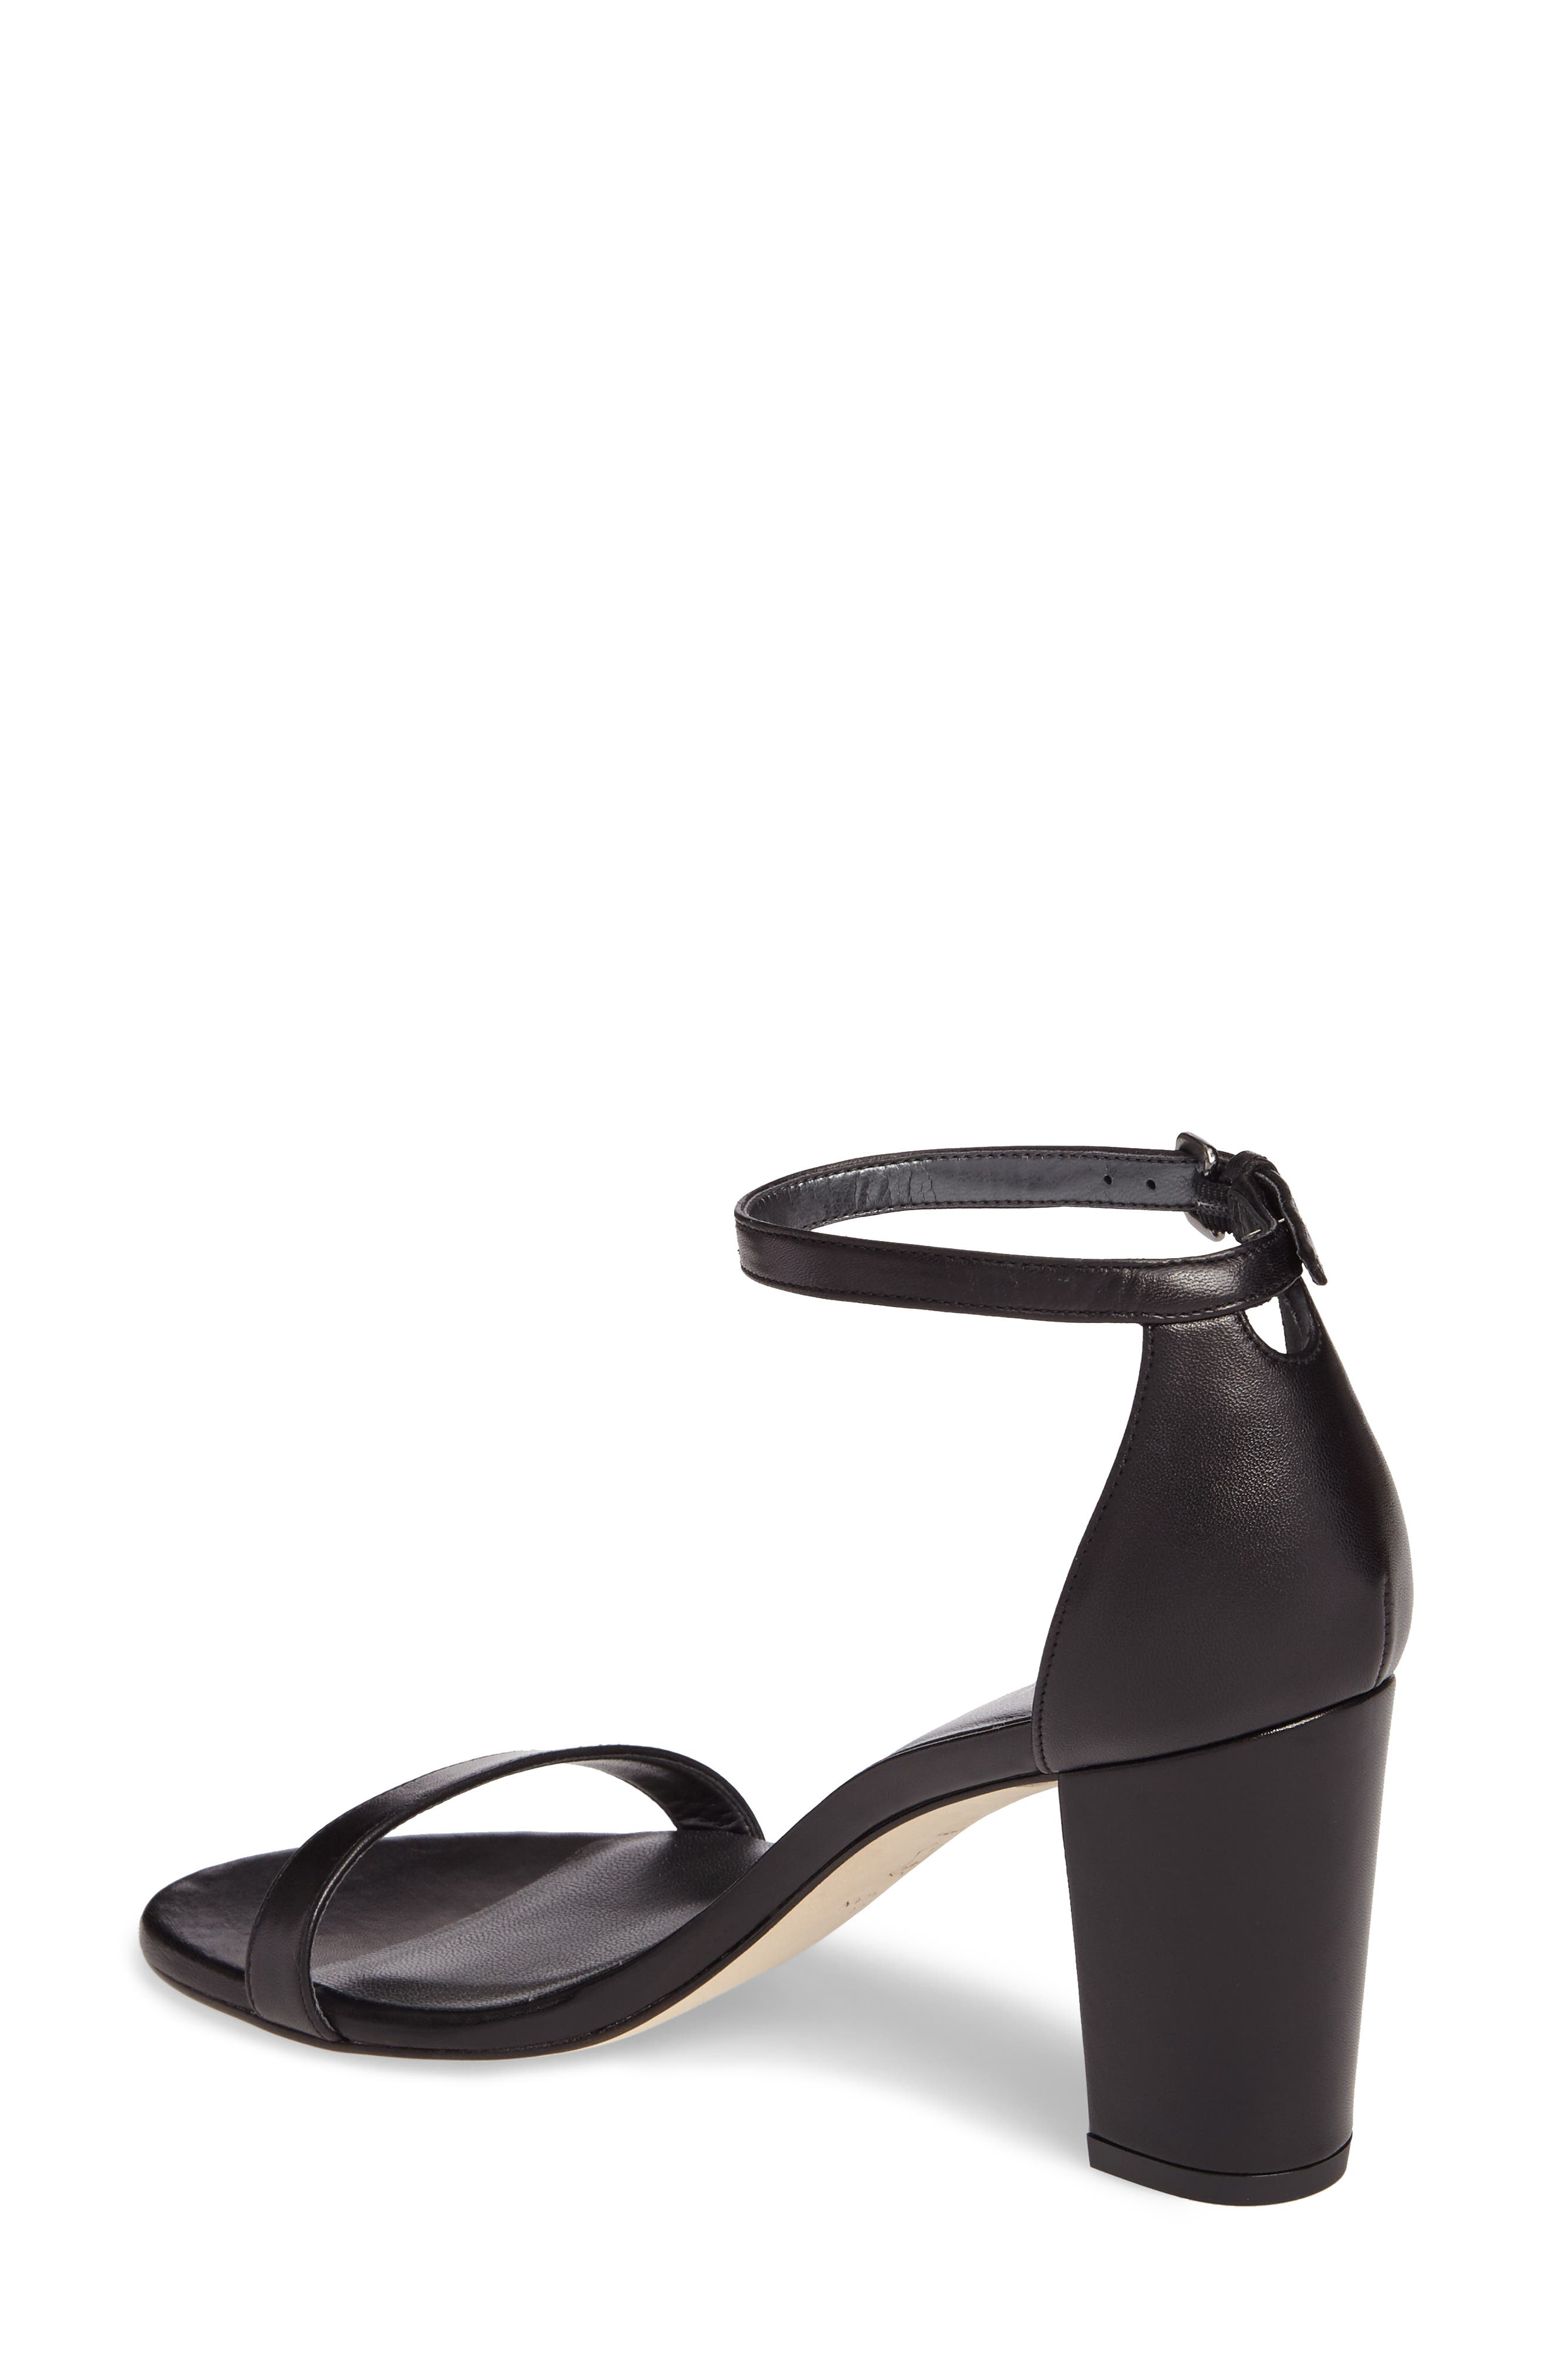 NearlyNude Ankle Strap Sandal,                             Alternate thumbnail 28, color,